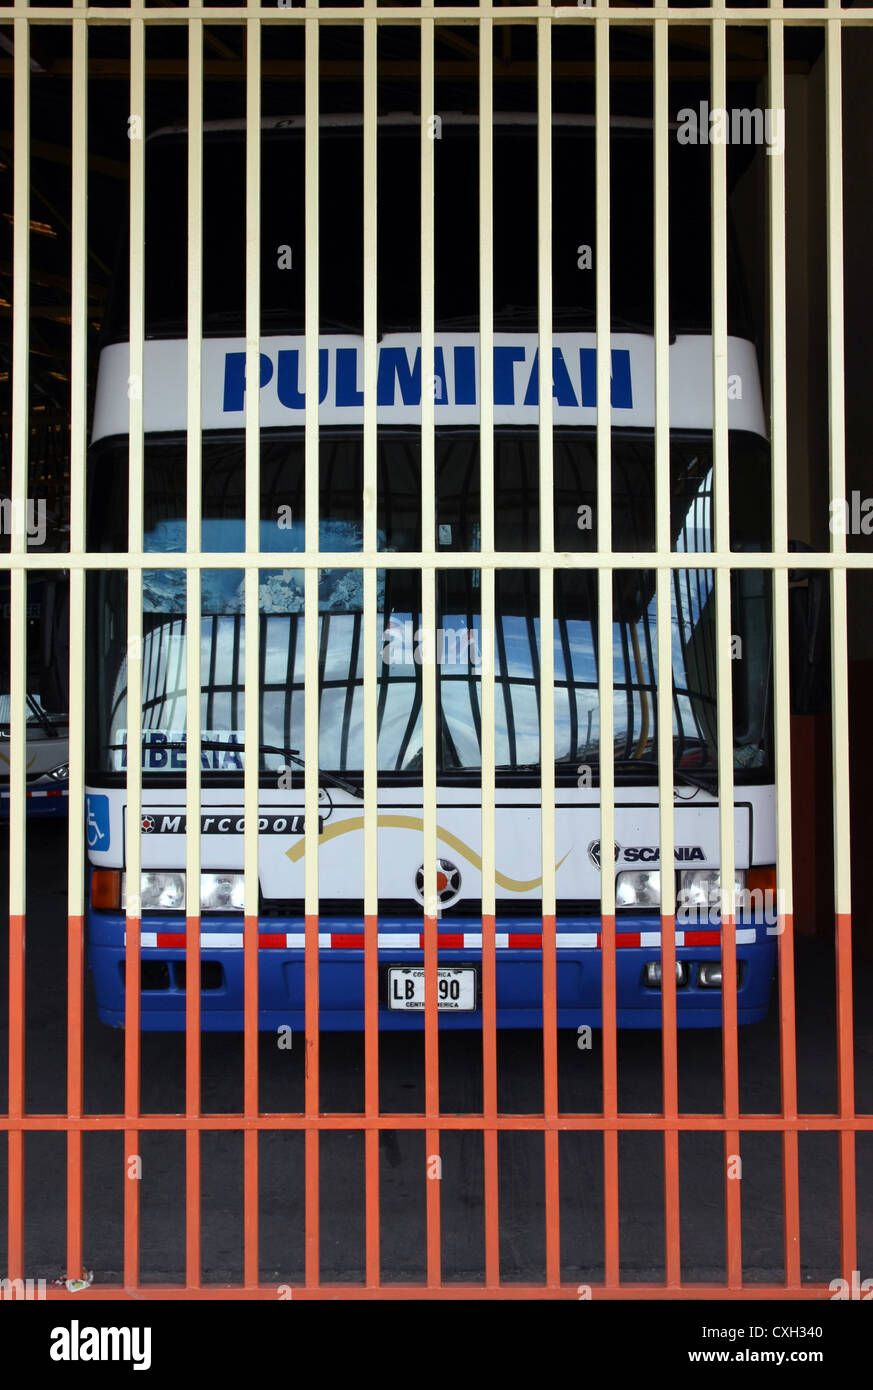 Local Buses at Liberia bus station. Costa Rica. - Stock Image